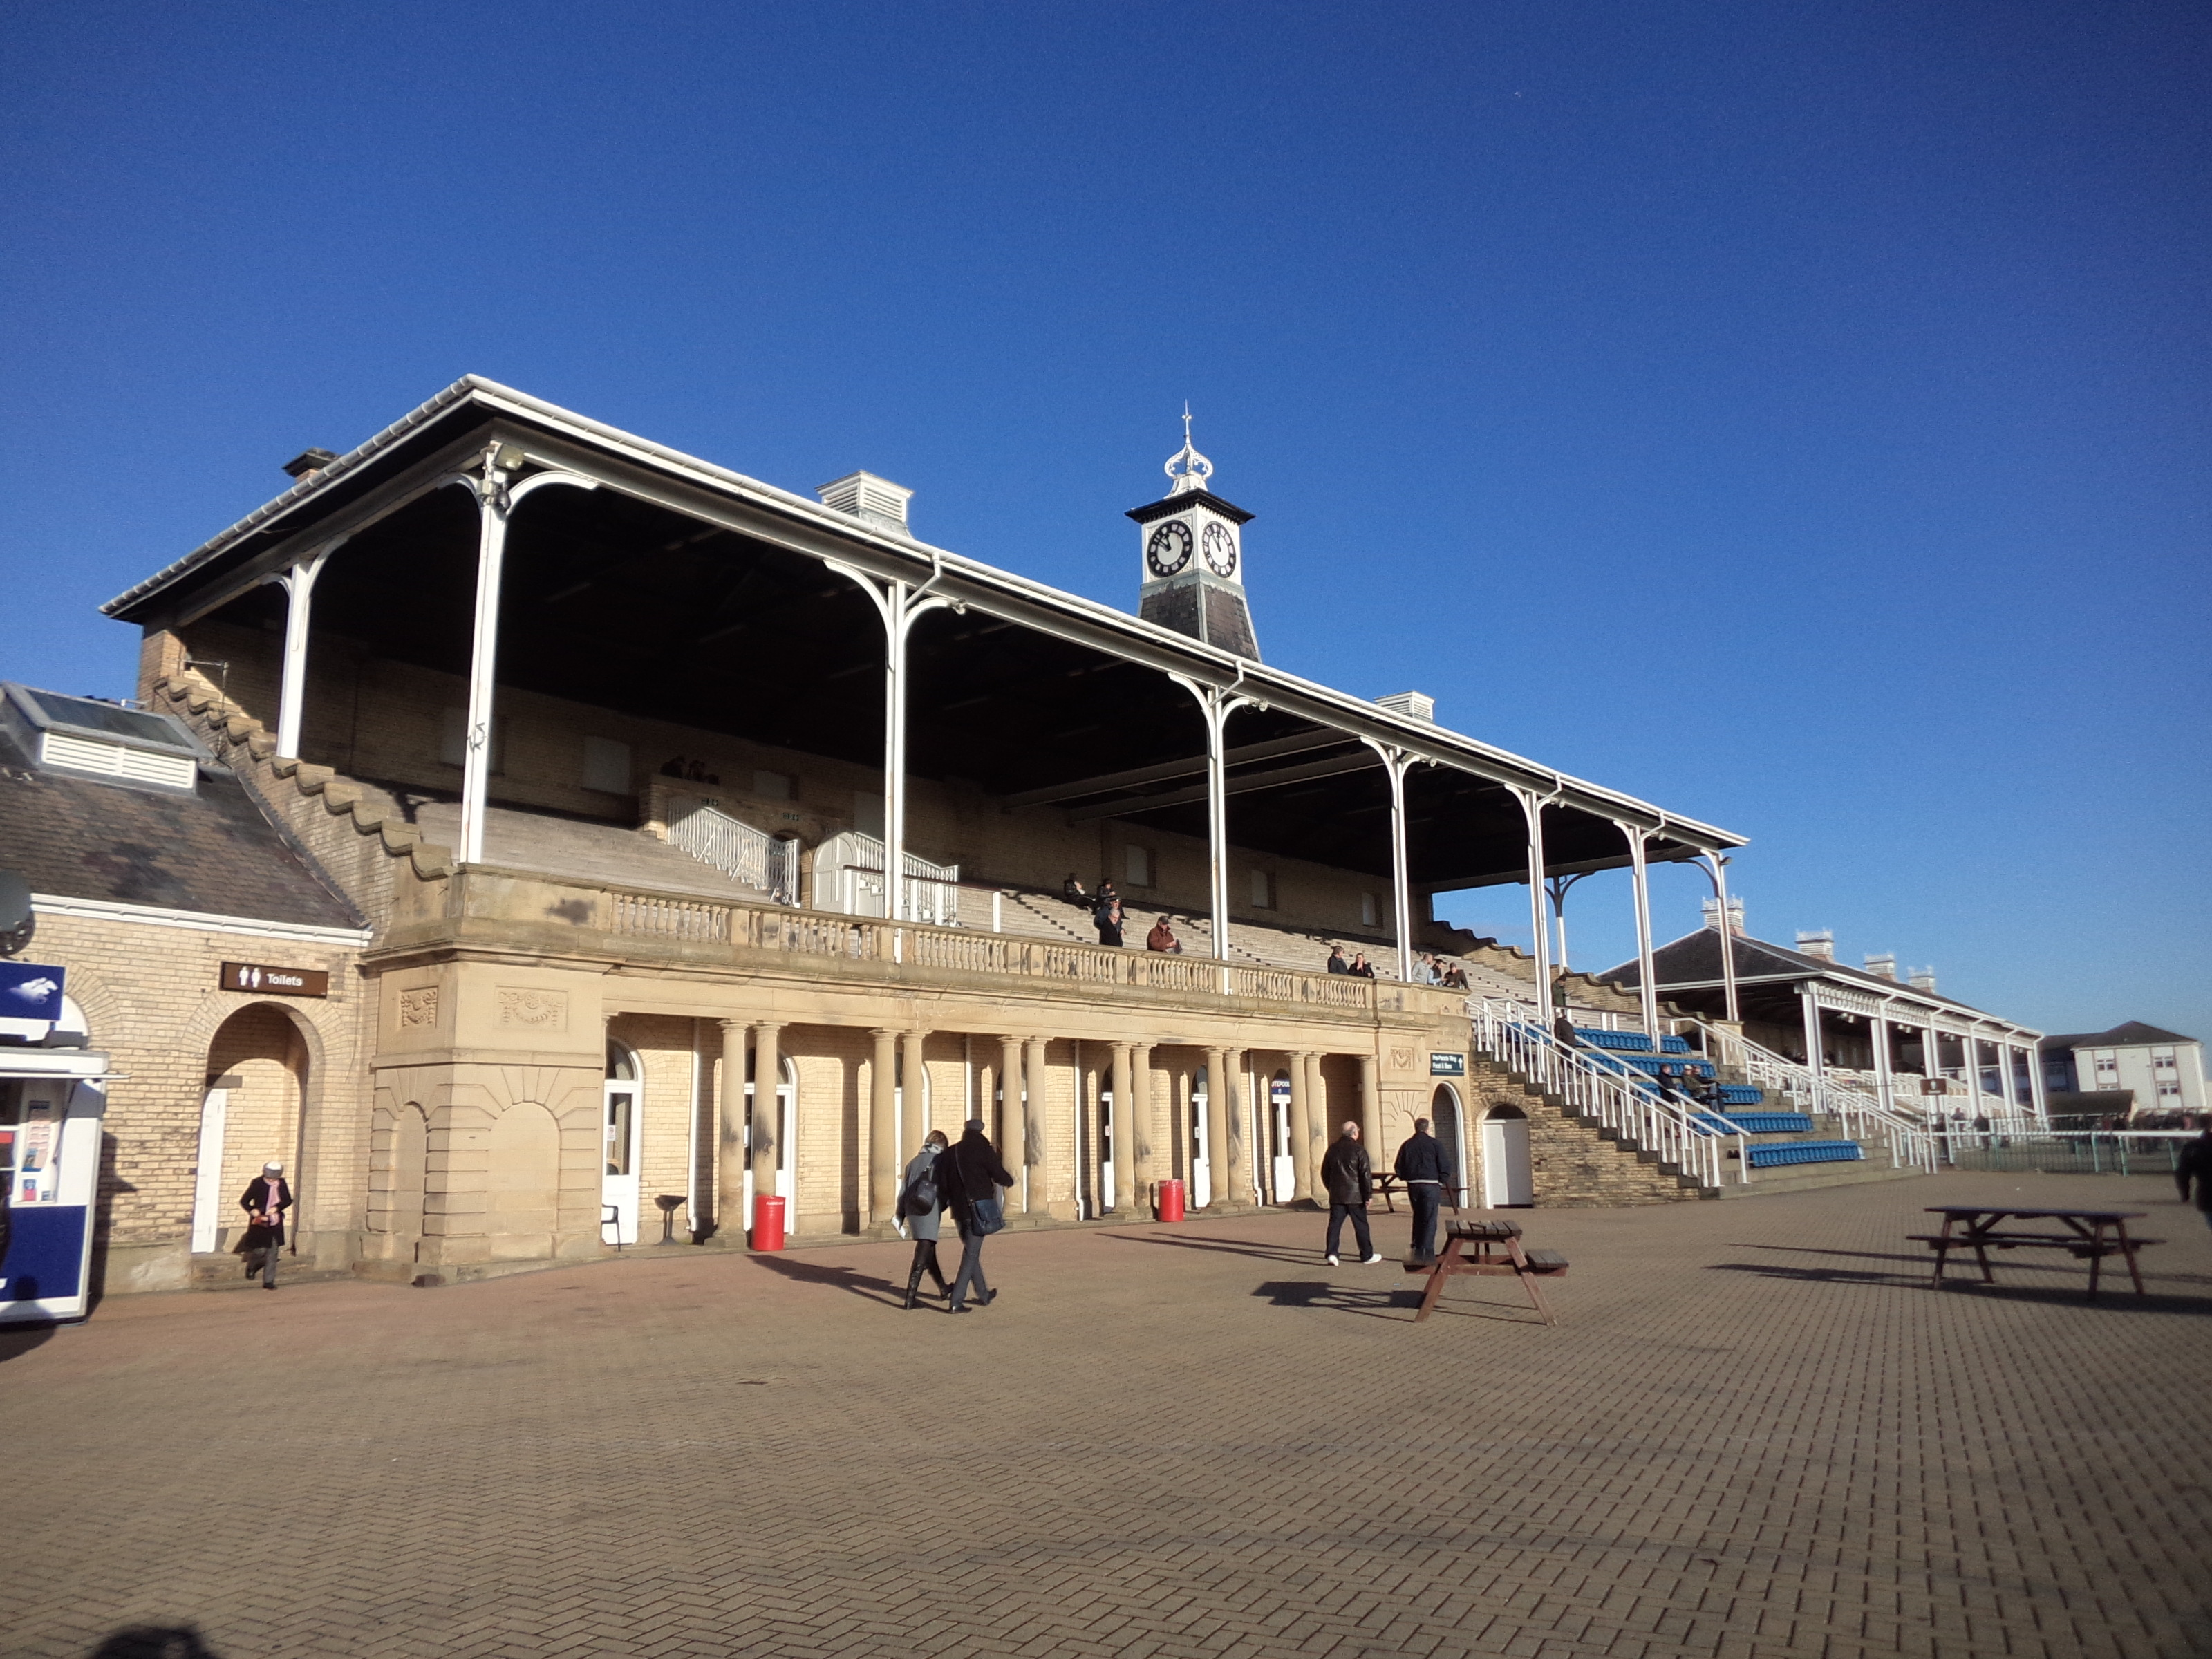 The historic clock tower at the Doncaster Racecourse.